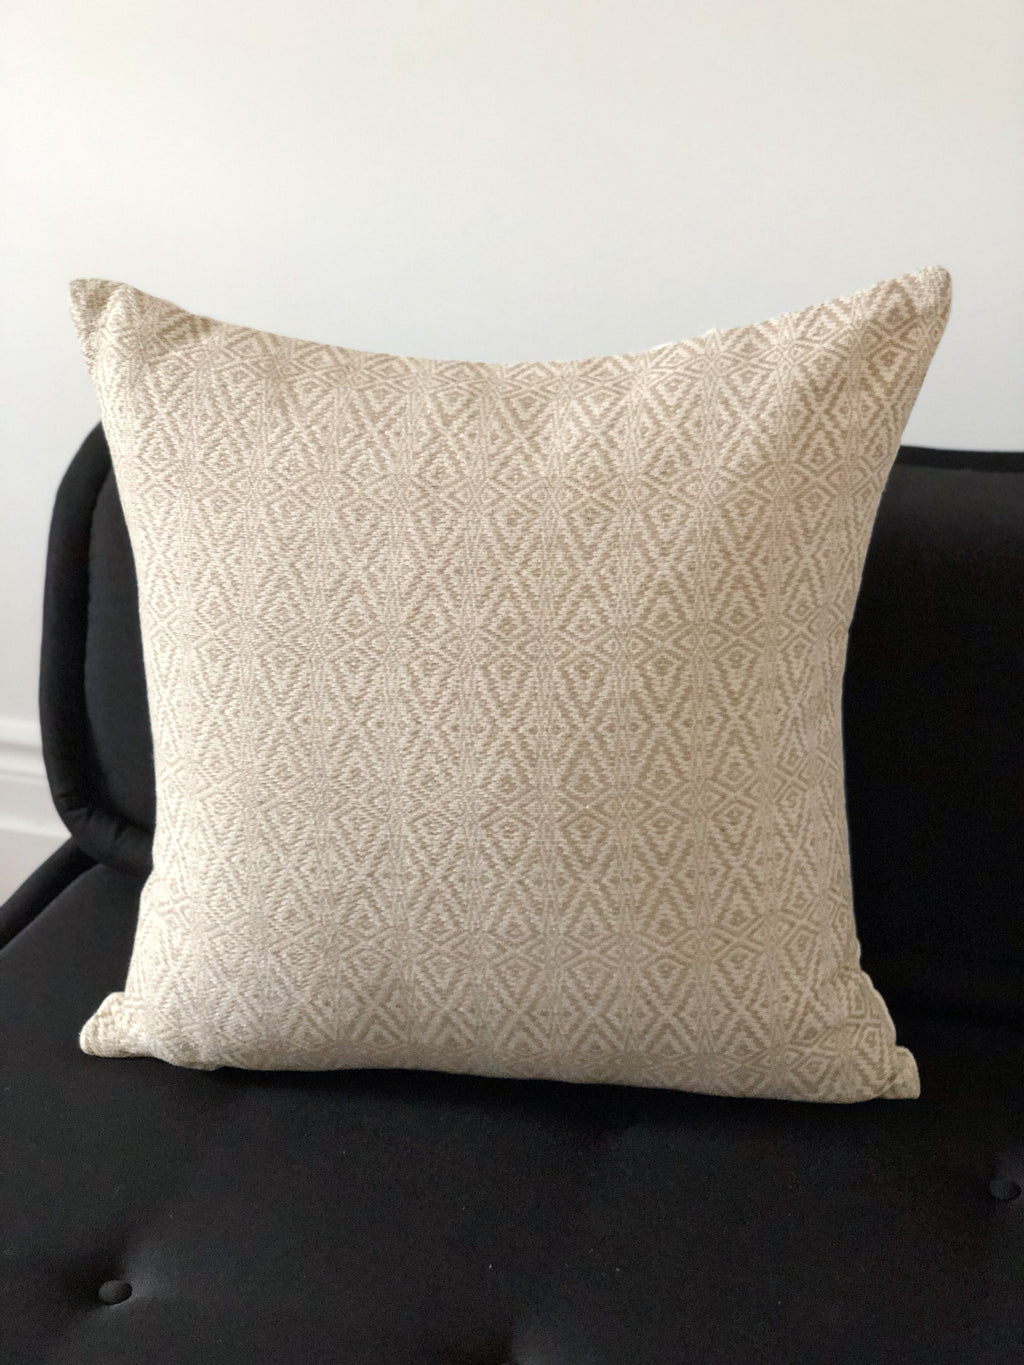 The Colima cushion cover